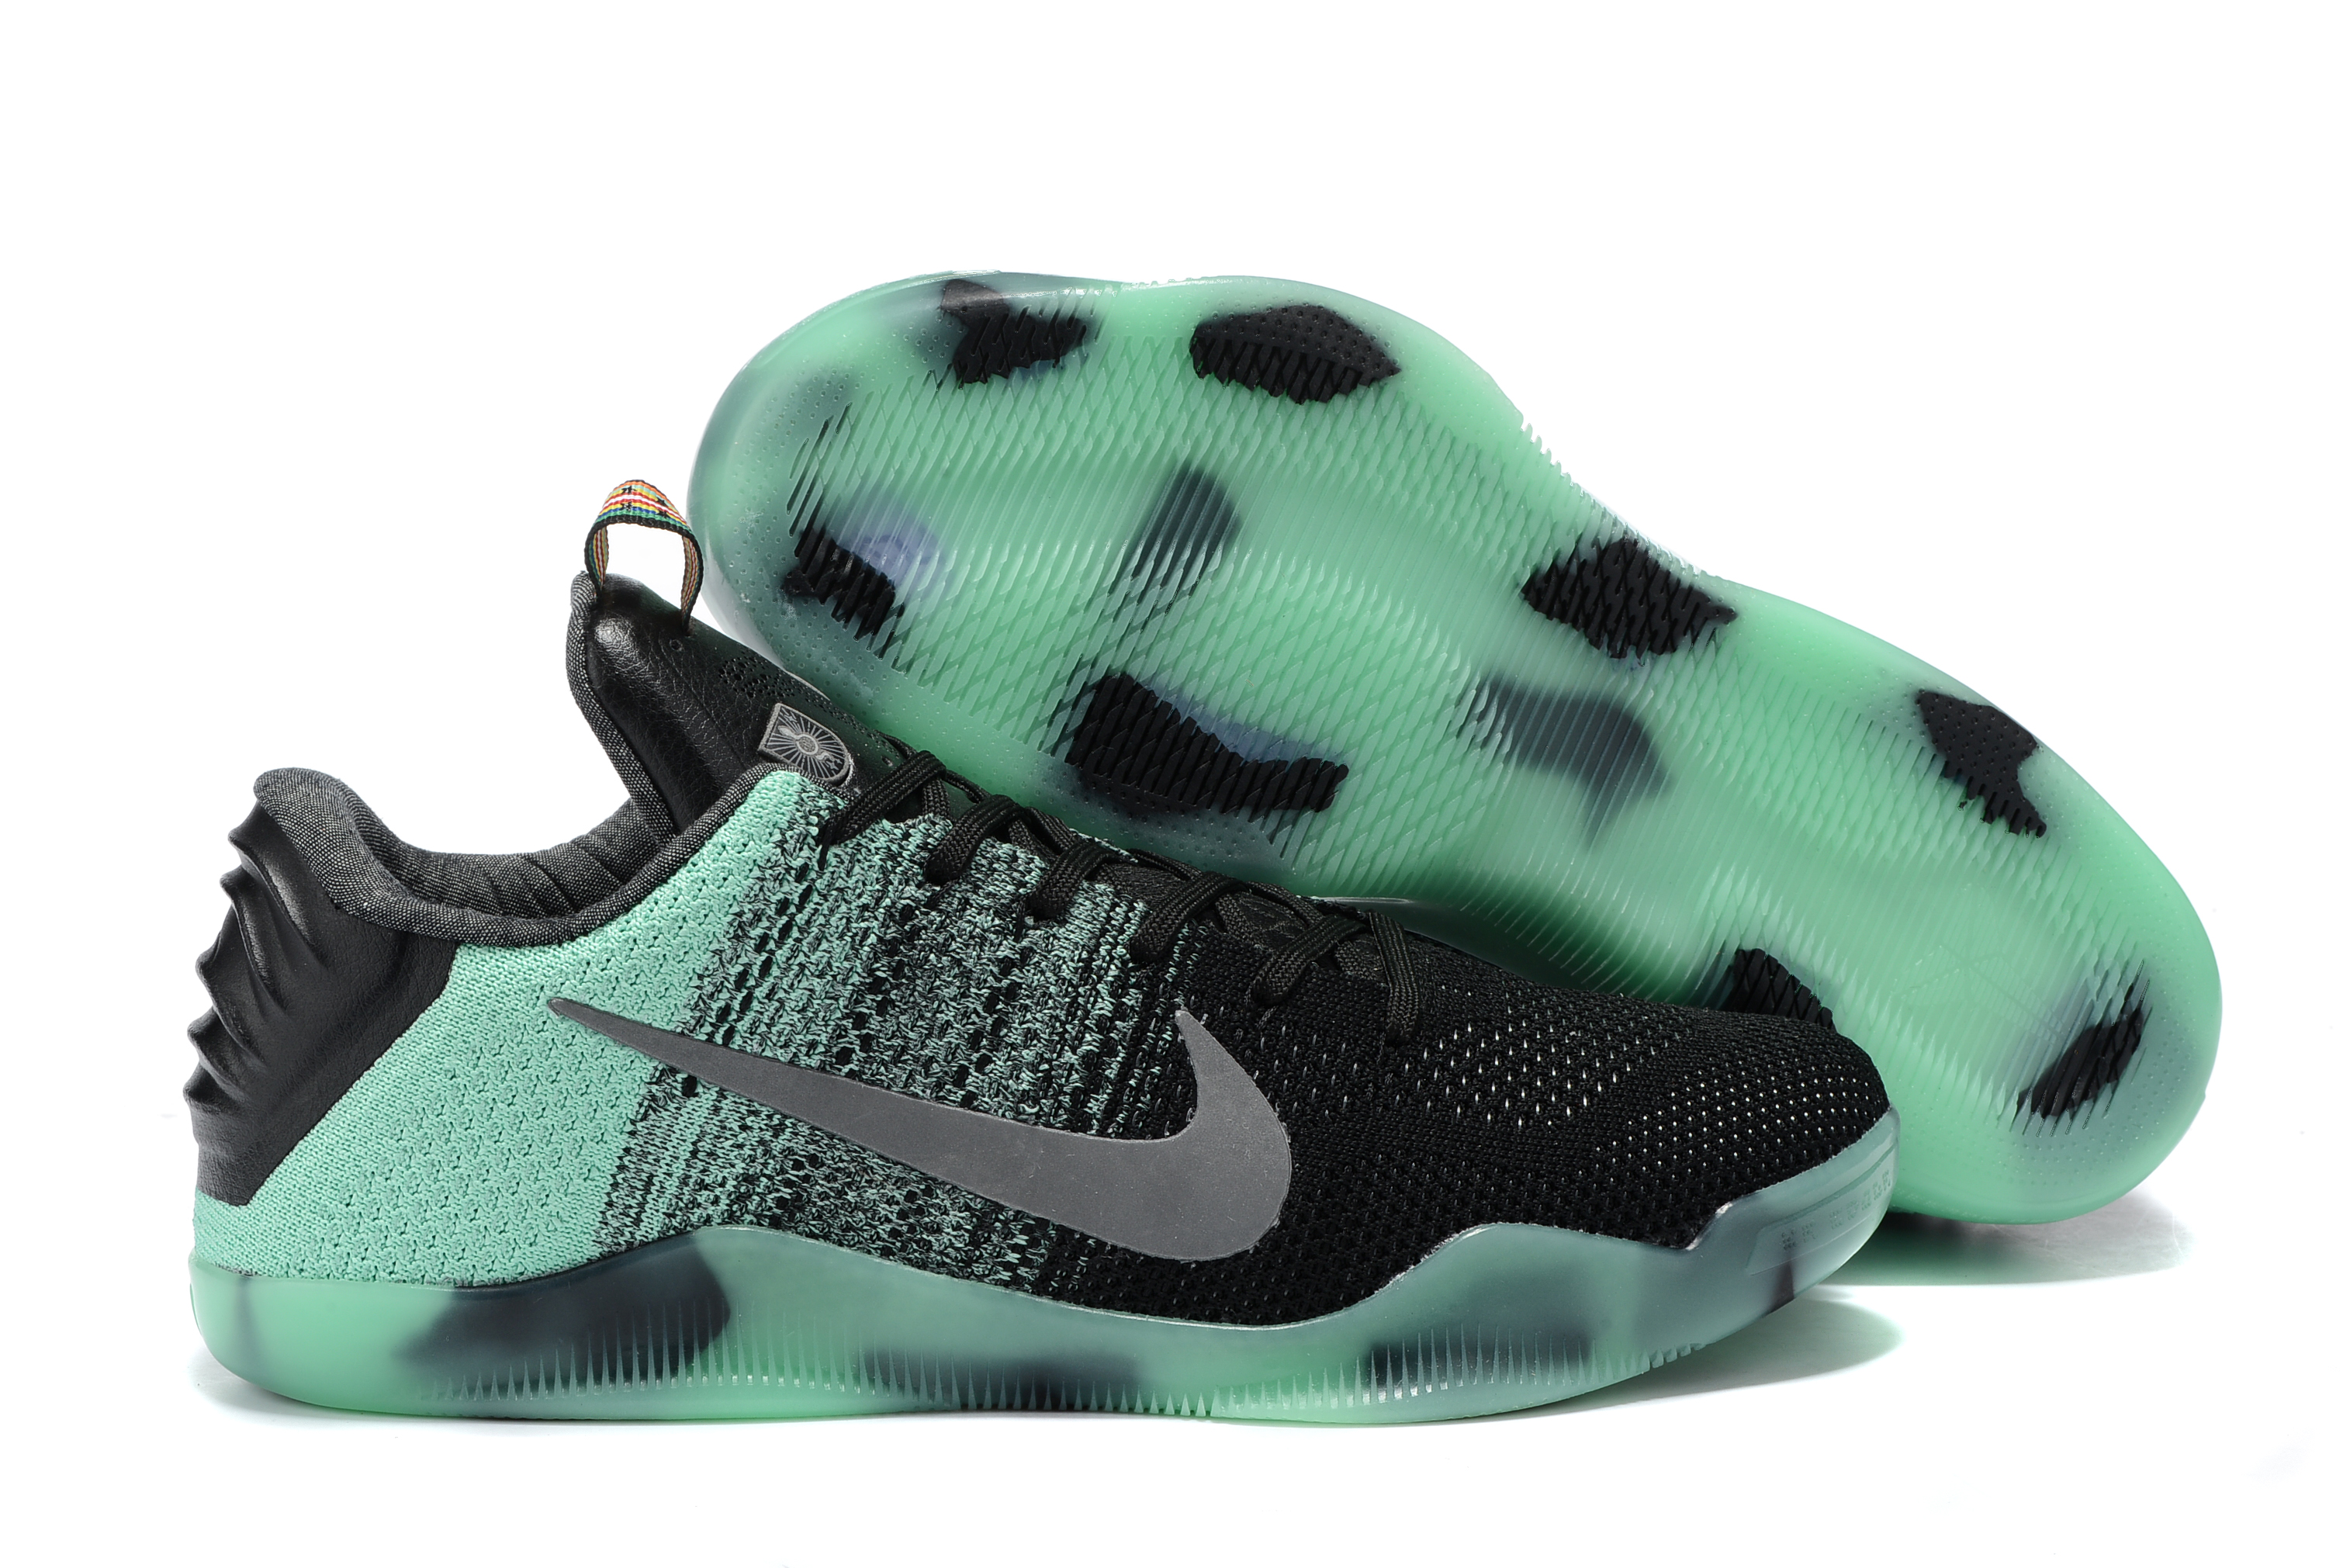 Nike Kobe 11 Flyknit Black Green Silver Shoes